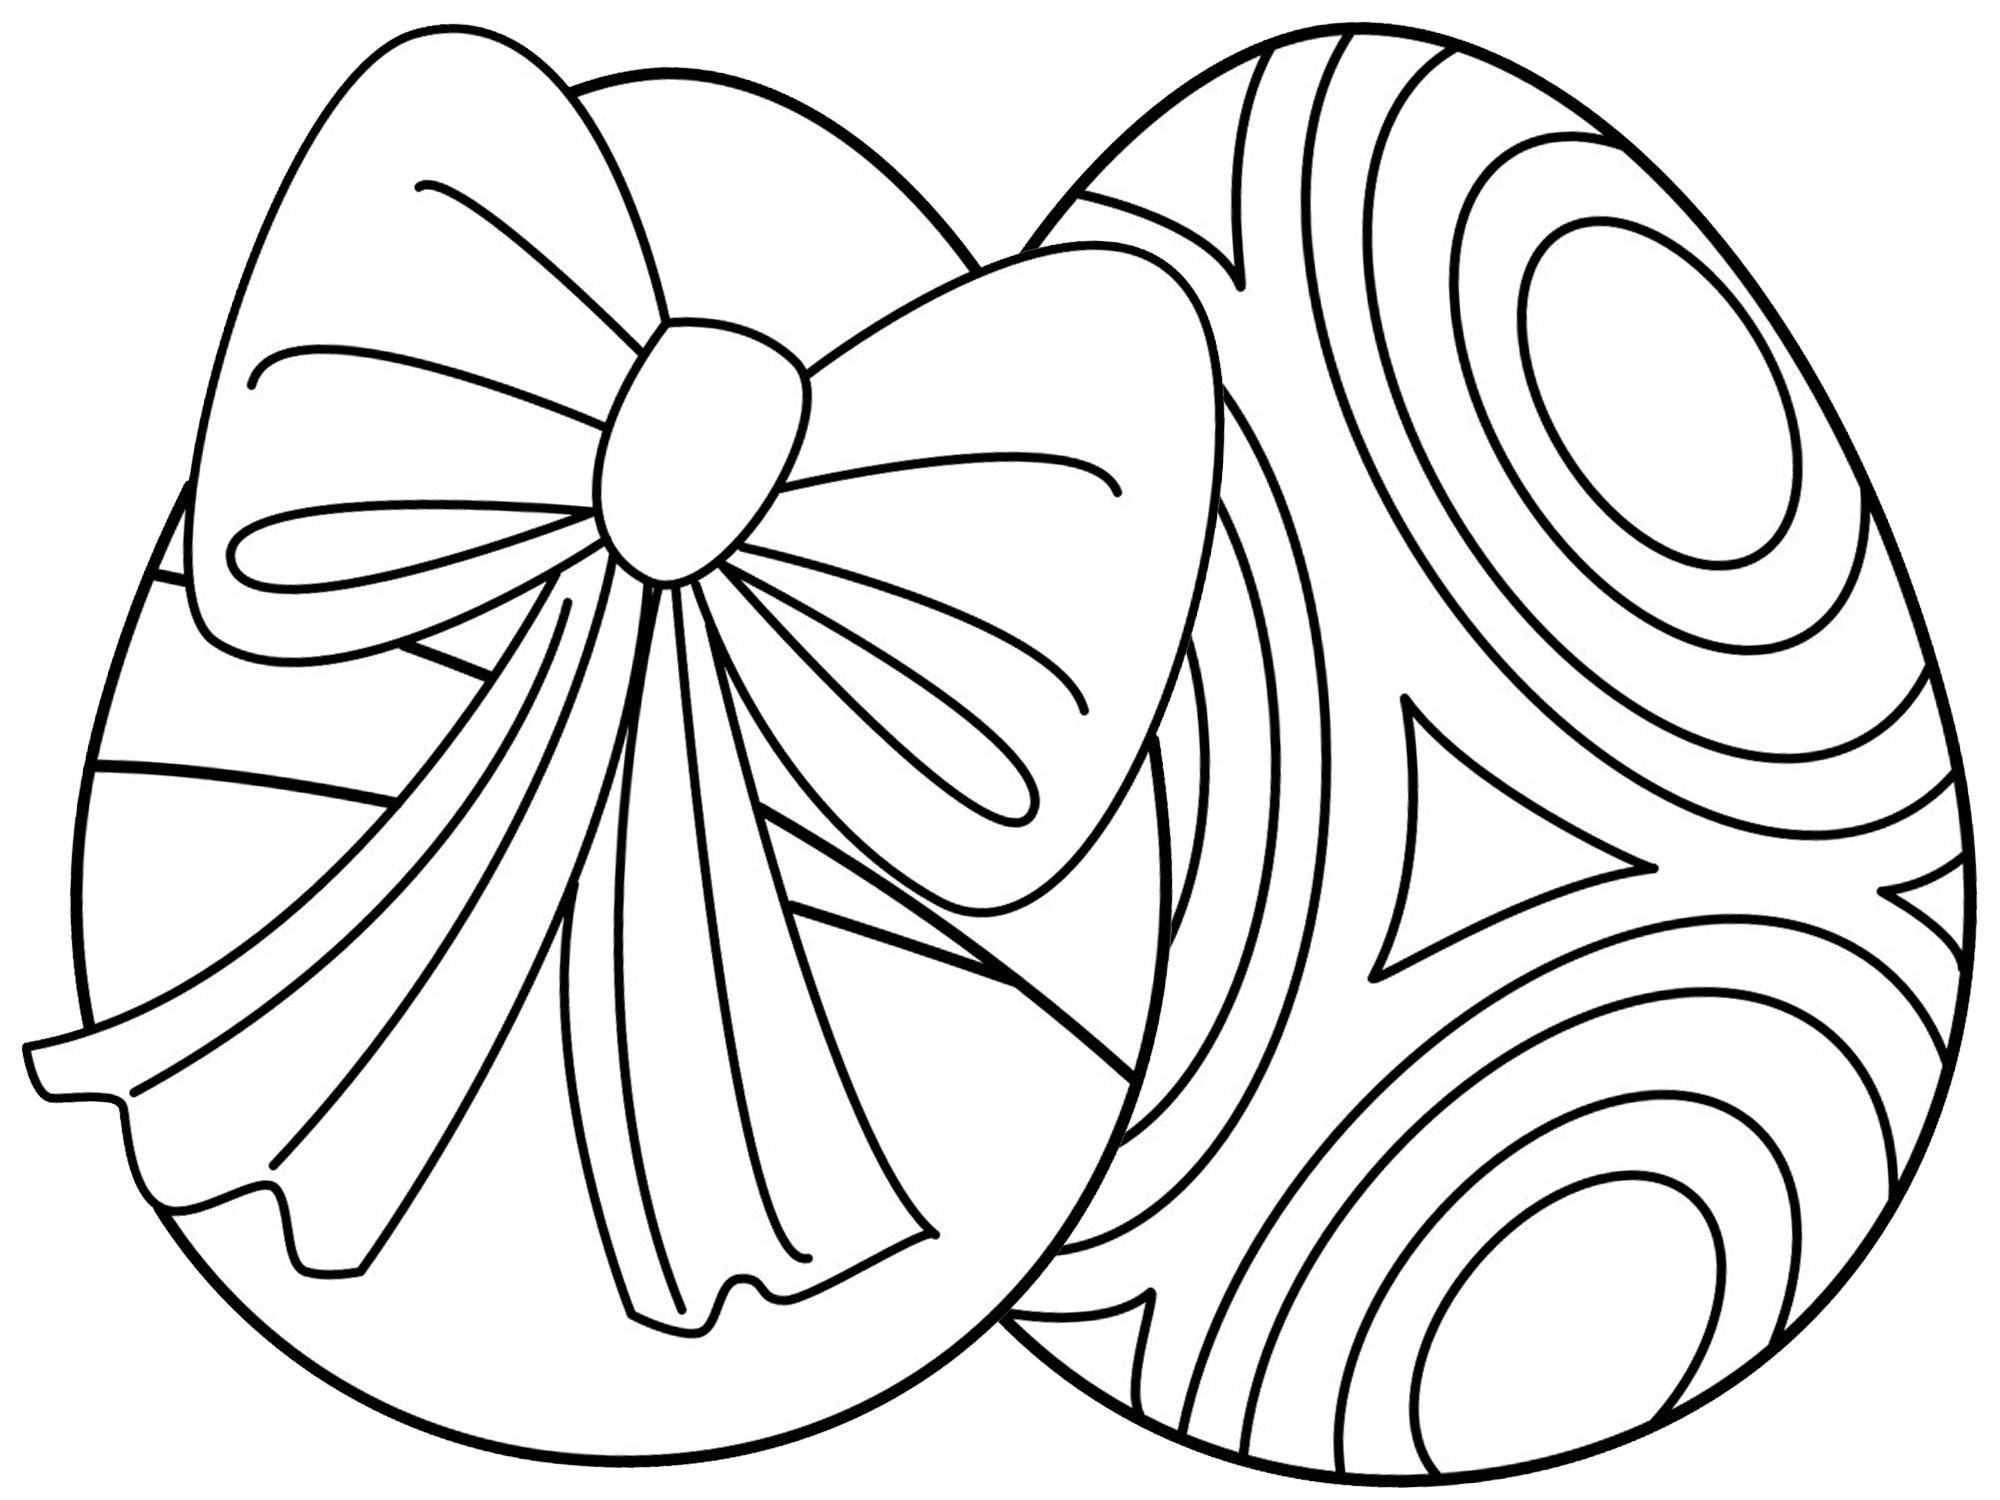 7 Places For Free, Printable Easter Egg Coloring Pages - Free Printable Easter Basket Coloring Pages